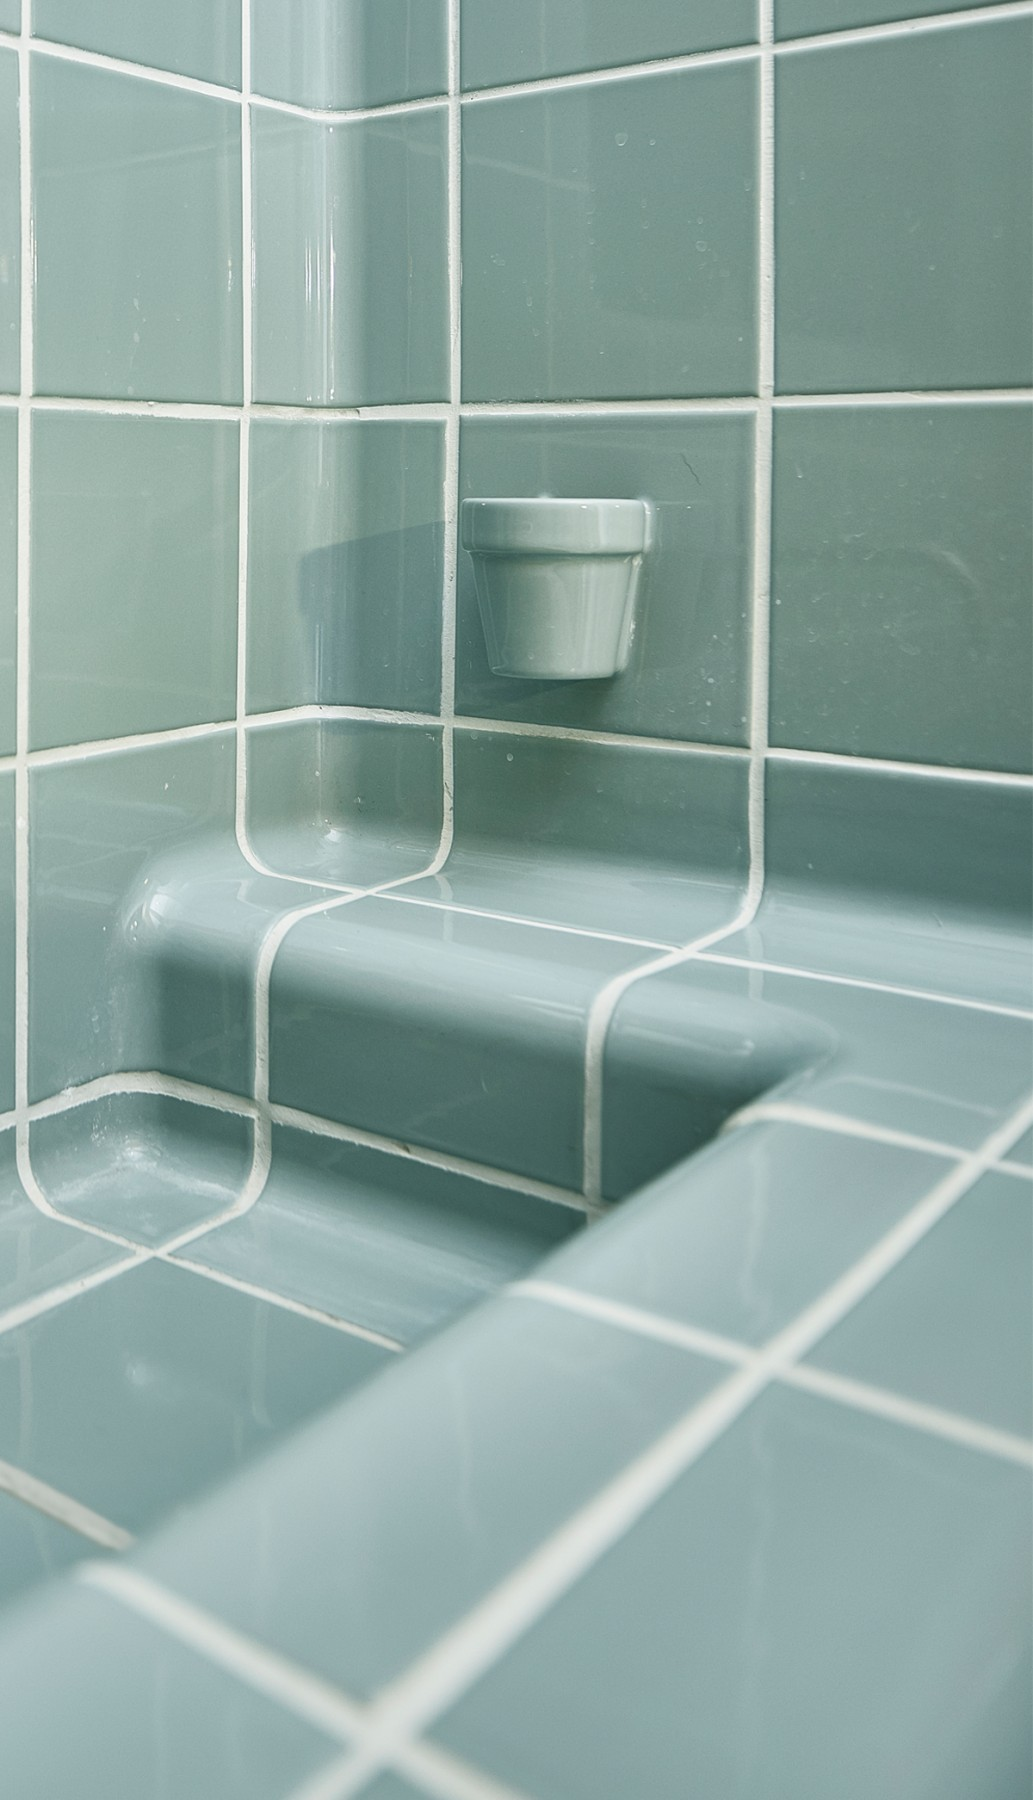 cup tile and sink in bathroom, modern design functional tiles available in 20 colors